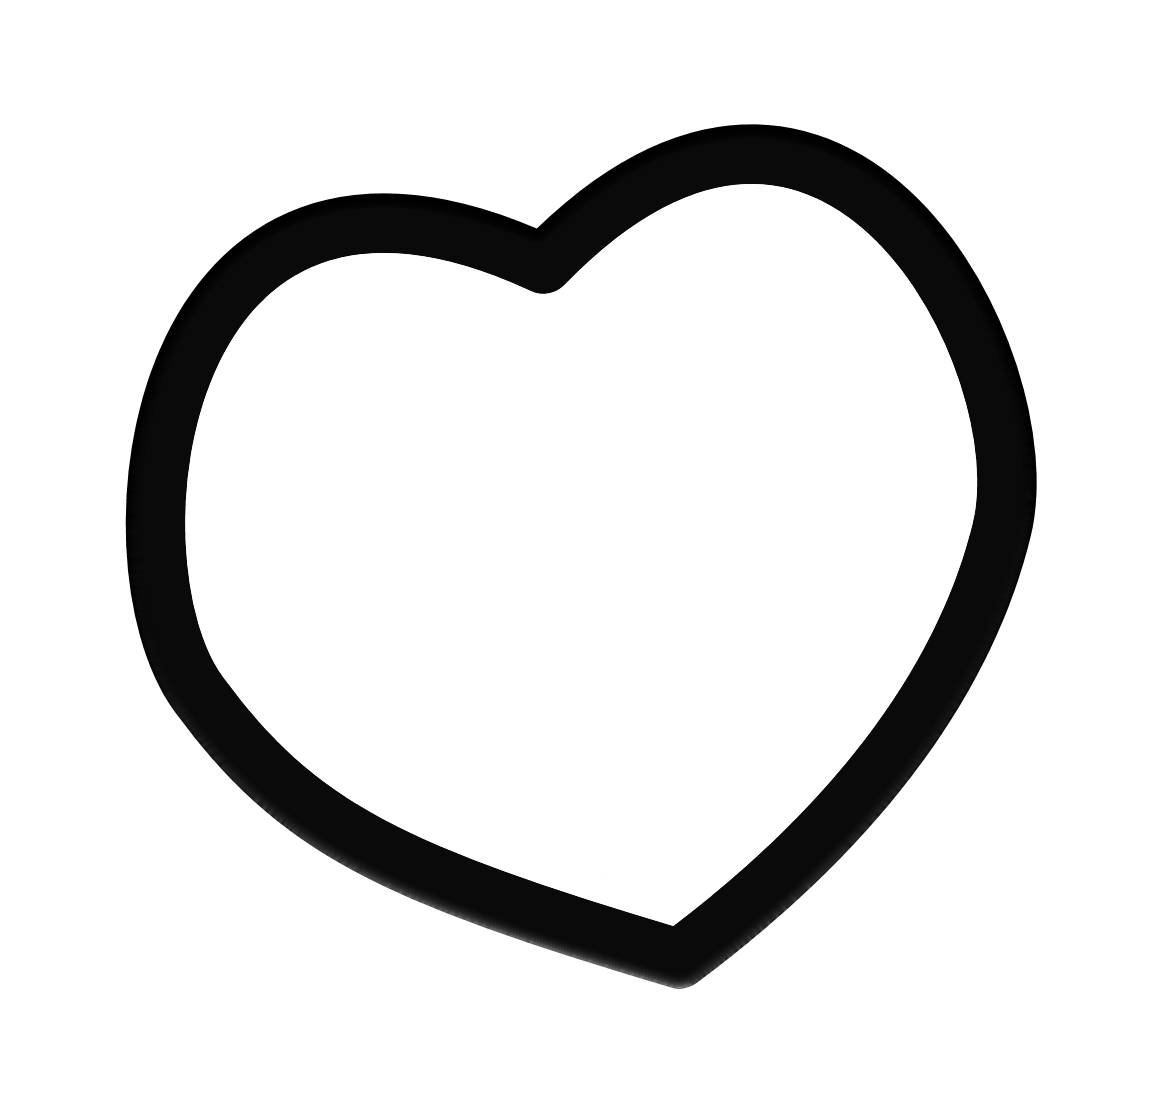 Heart frames clipart vector free download Heart Frame Clip Art Black And White | Clipart Panda - Free Clipart ... vector free download